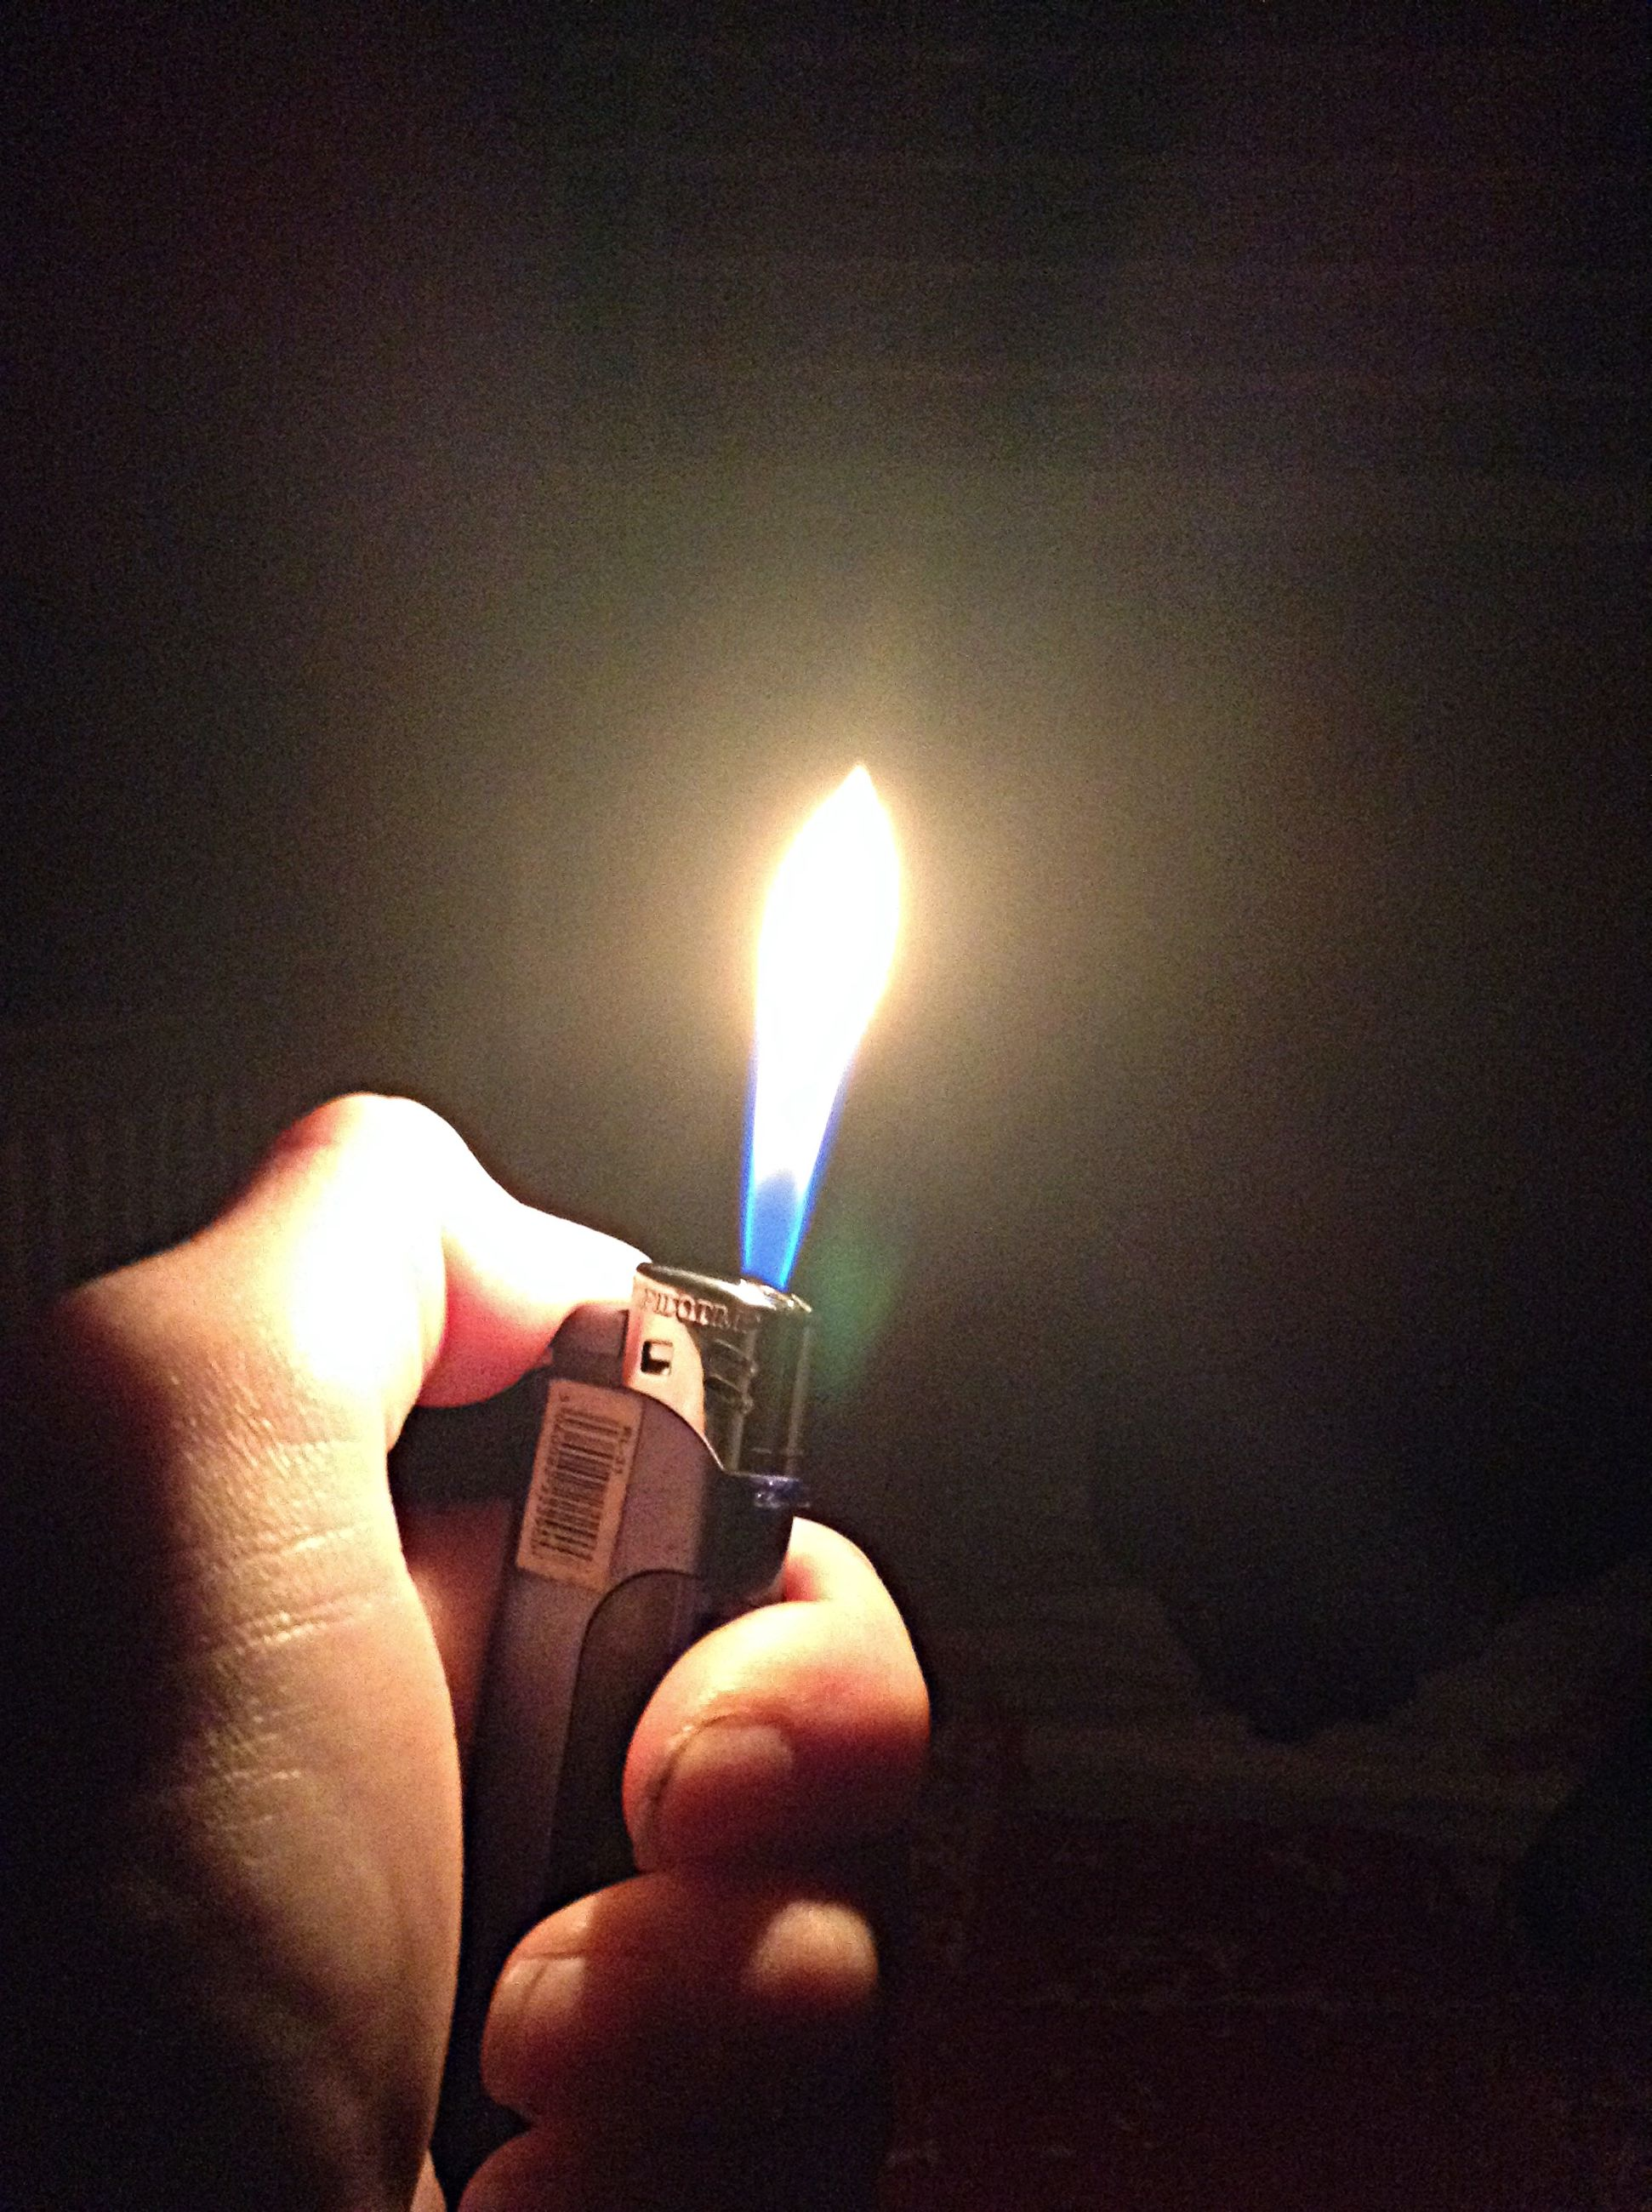 person, burning, flame, part of, holding, human finger, cropped, heat - temperature, glowing, fire - natural phenomenon, close-up, lit, candle, personal perspective, unrecognizable person, indoors, illuminated